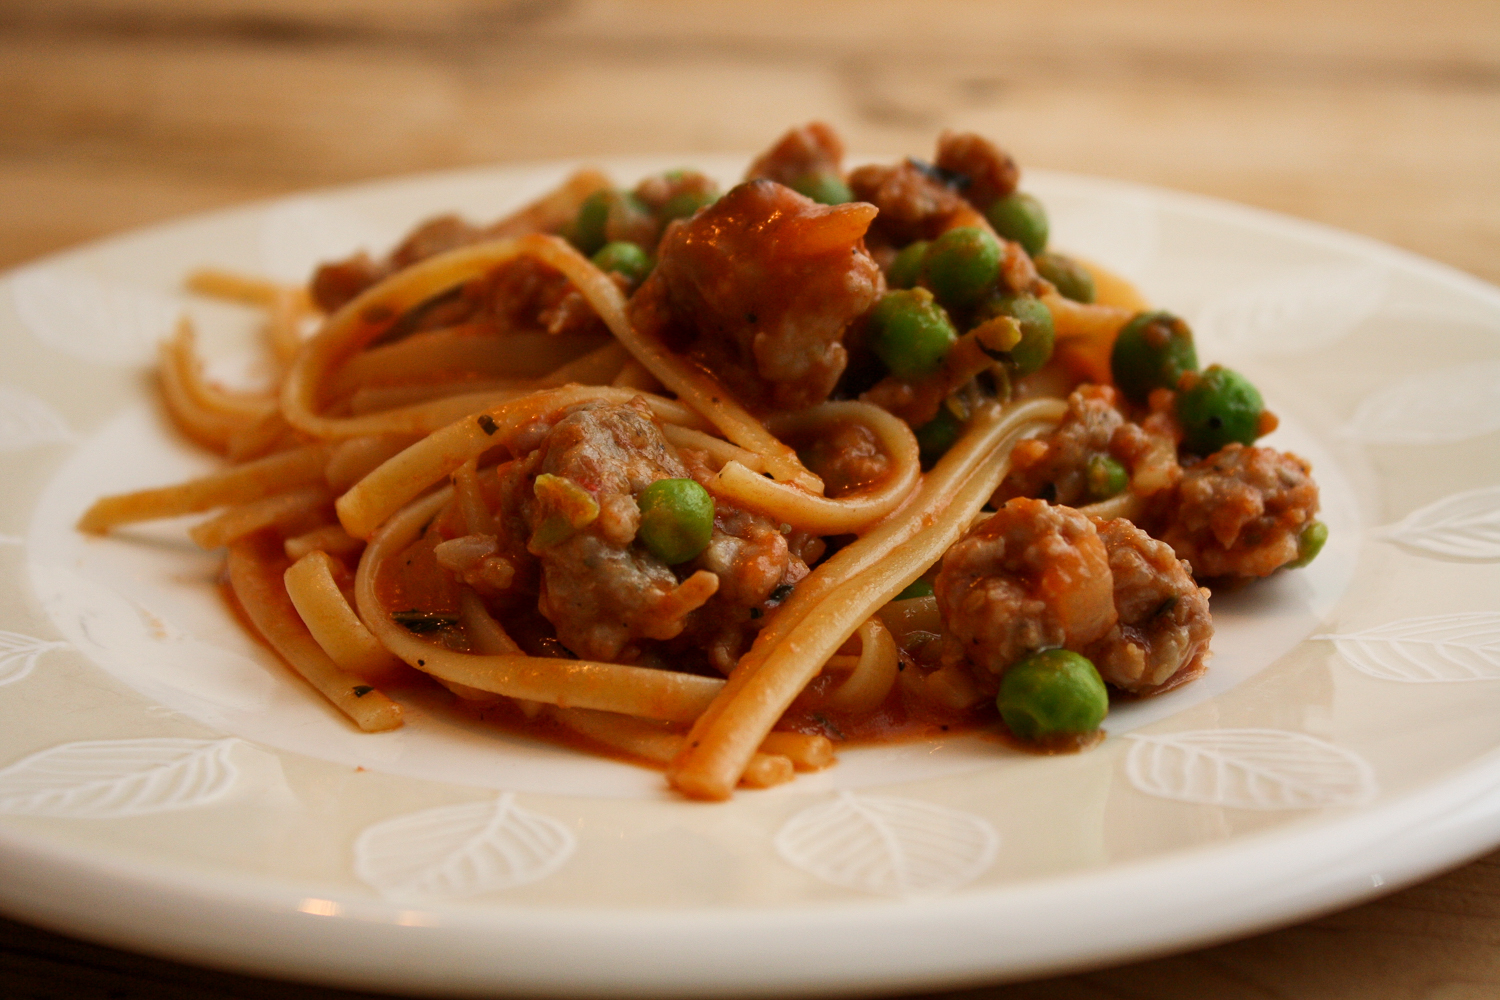 Spaghetti With Peas and Sausage